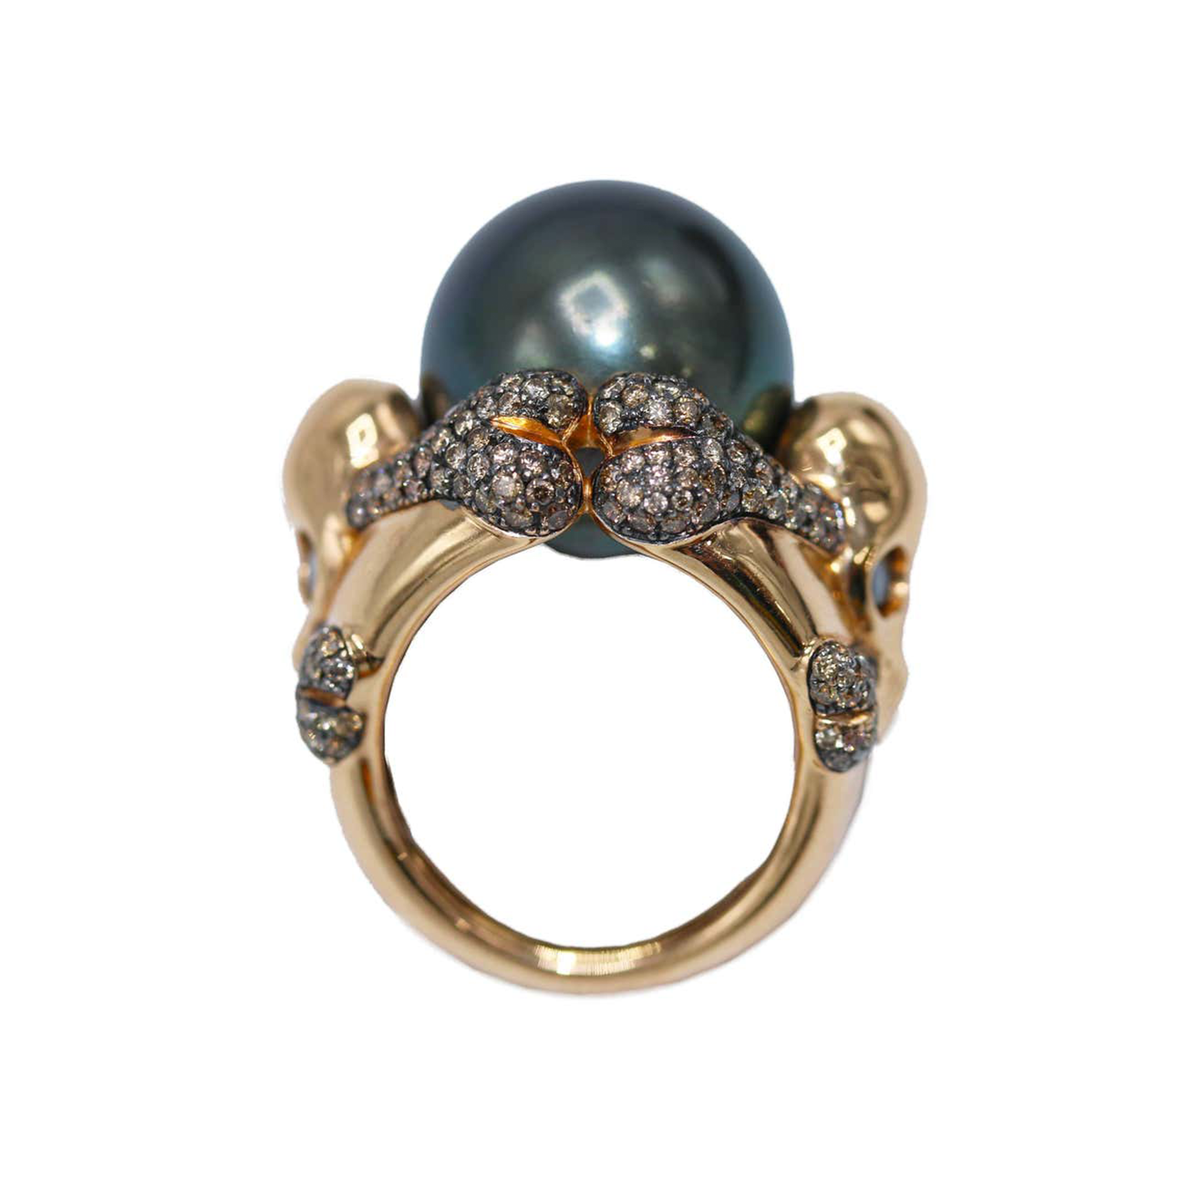 de GRISOGONO South Sea Pearl & Colored Diamond Skull Ring